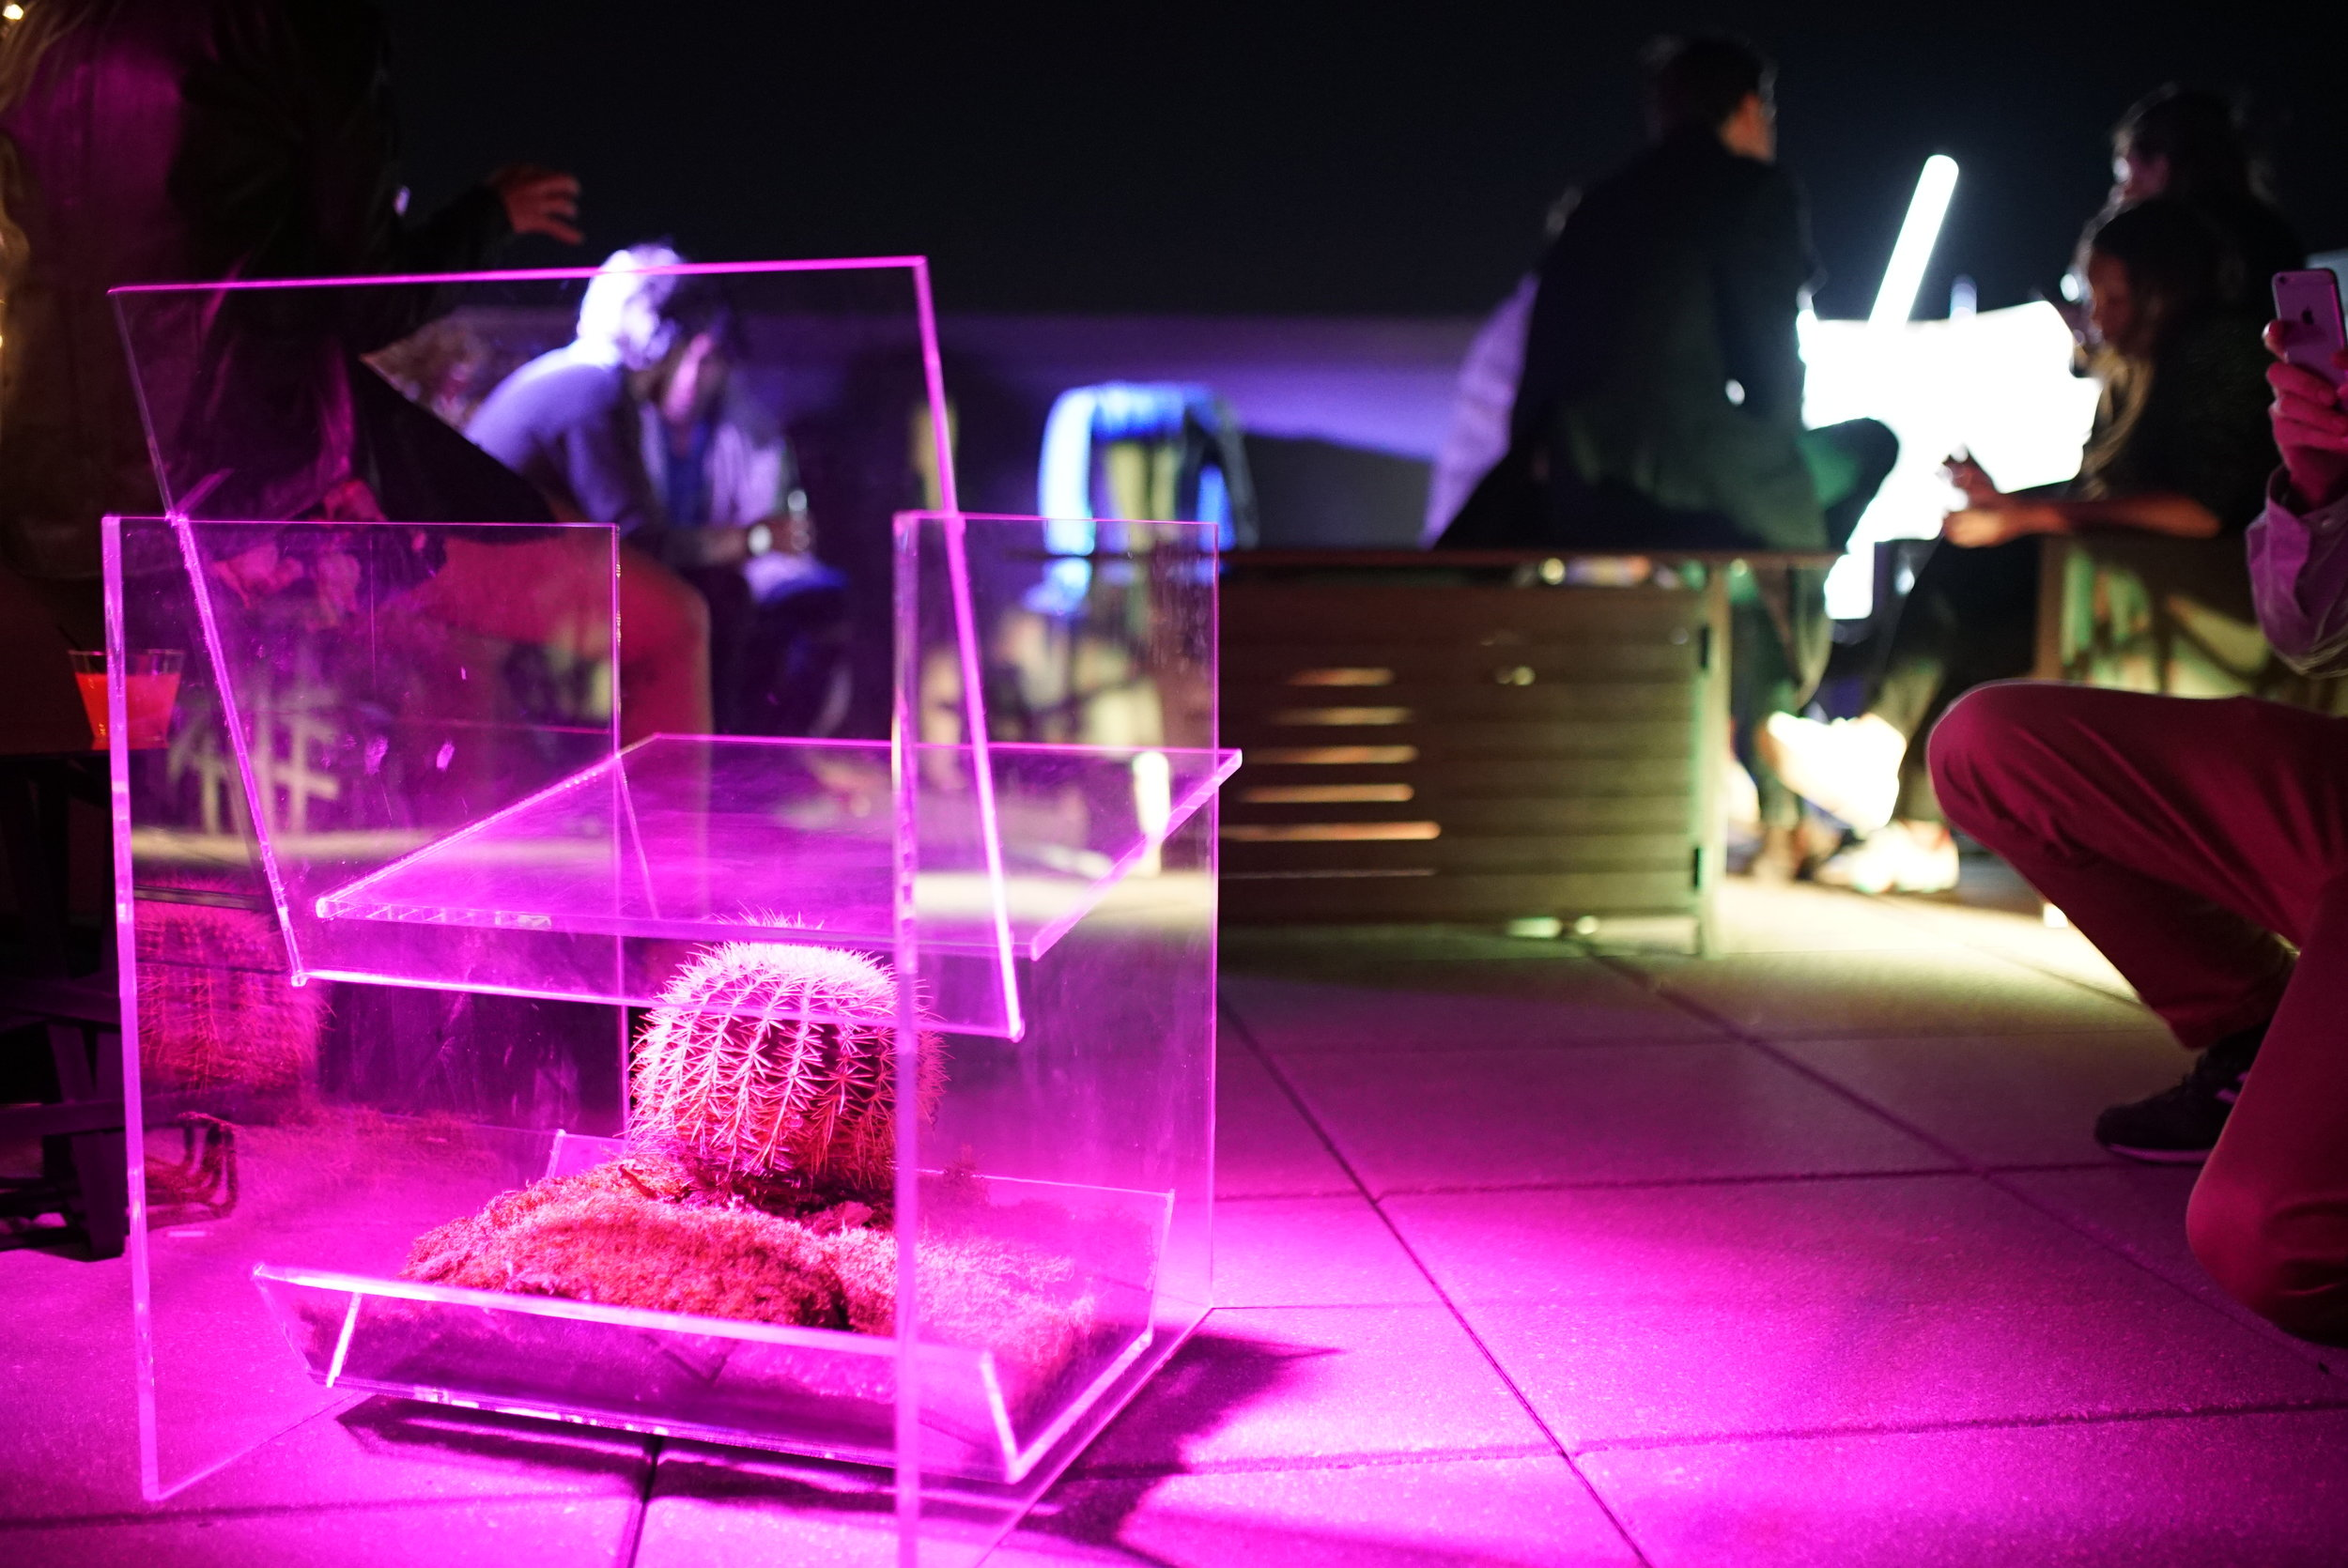 ny-events-product-launch-rooftop03074.jpg